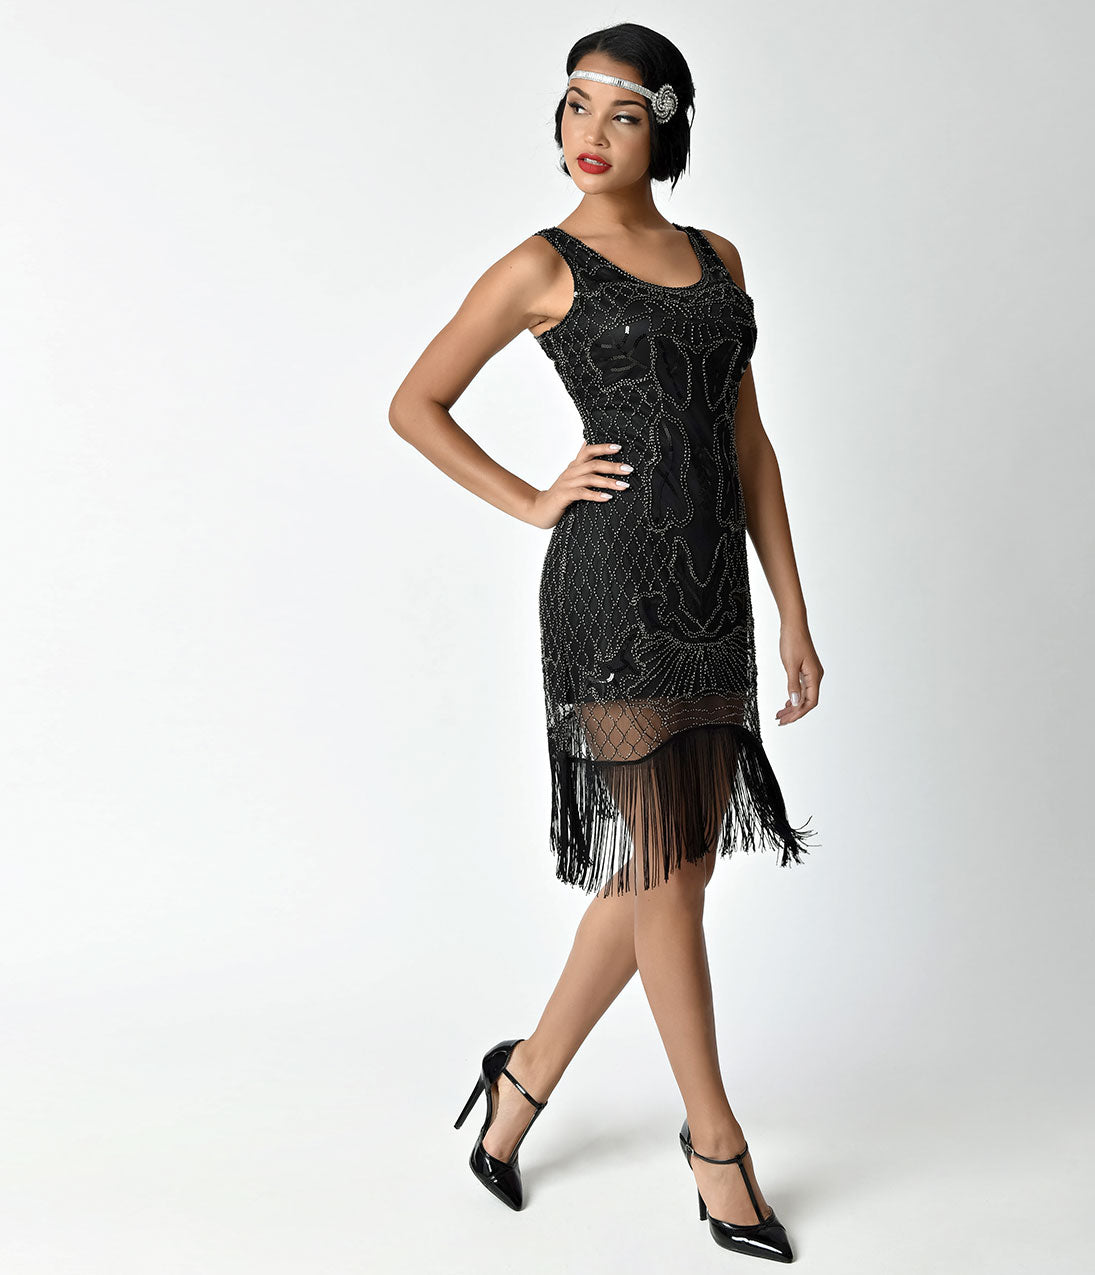 Swing Dance Shoes- Vintage, Lindy Hop, Tap, Ballroom Unique Vintage 1920S Style Black  Silver Beaded Francoise Fringe Flapper Dress $43.00 AT vintagedancer.com